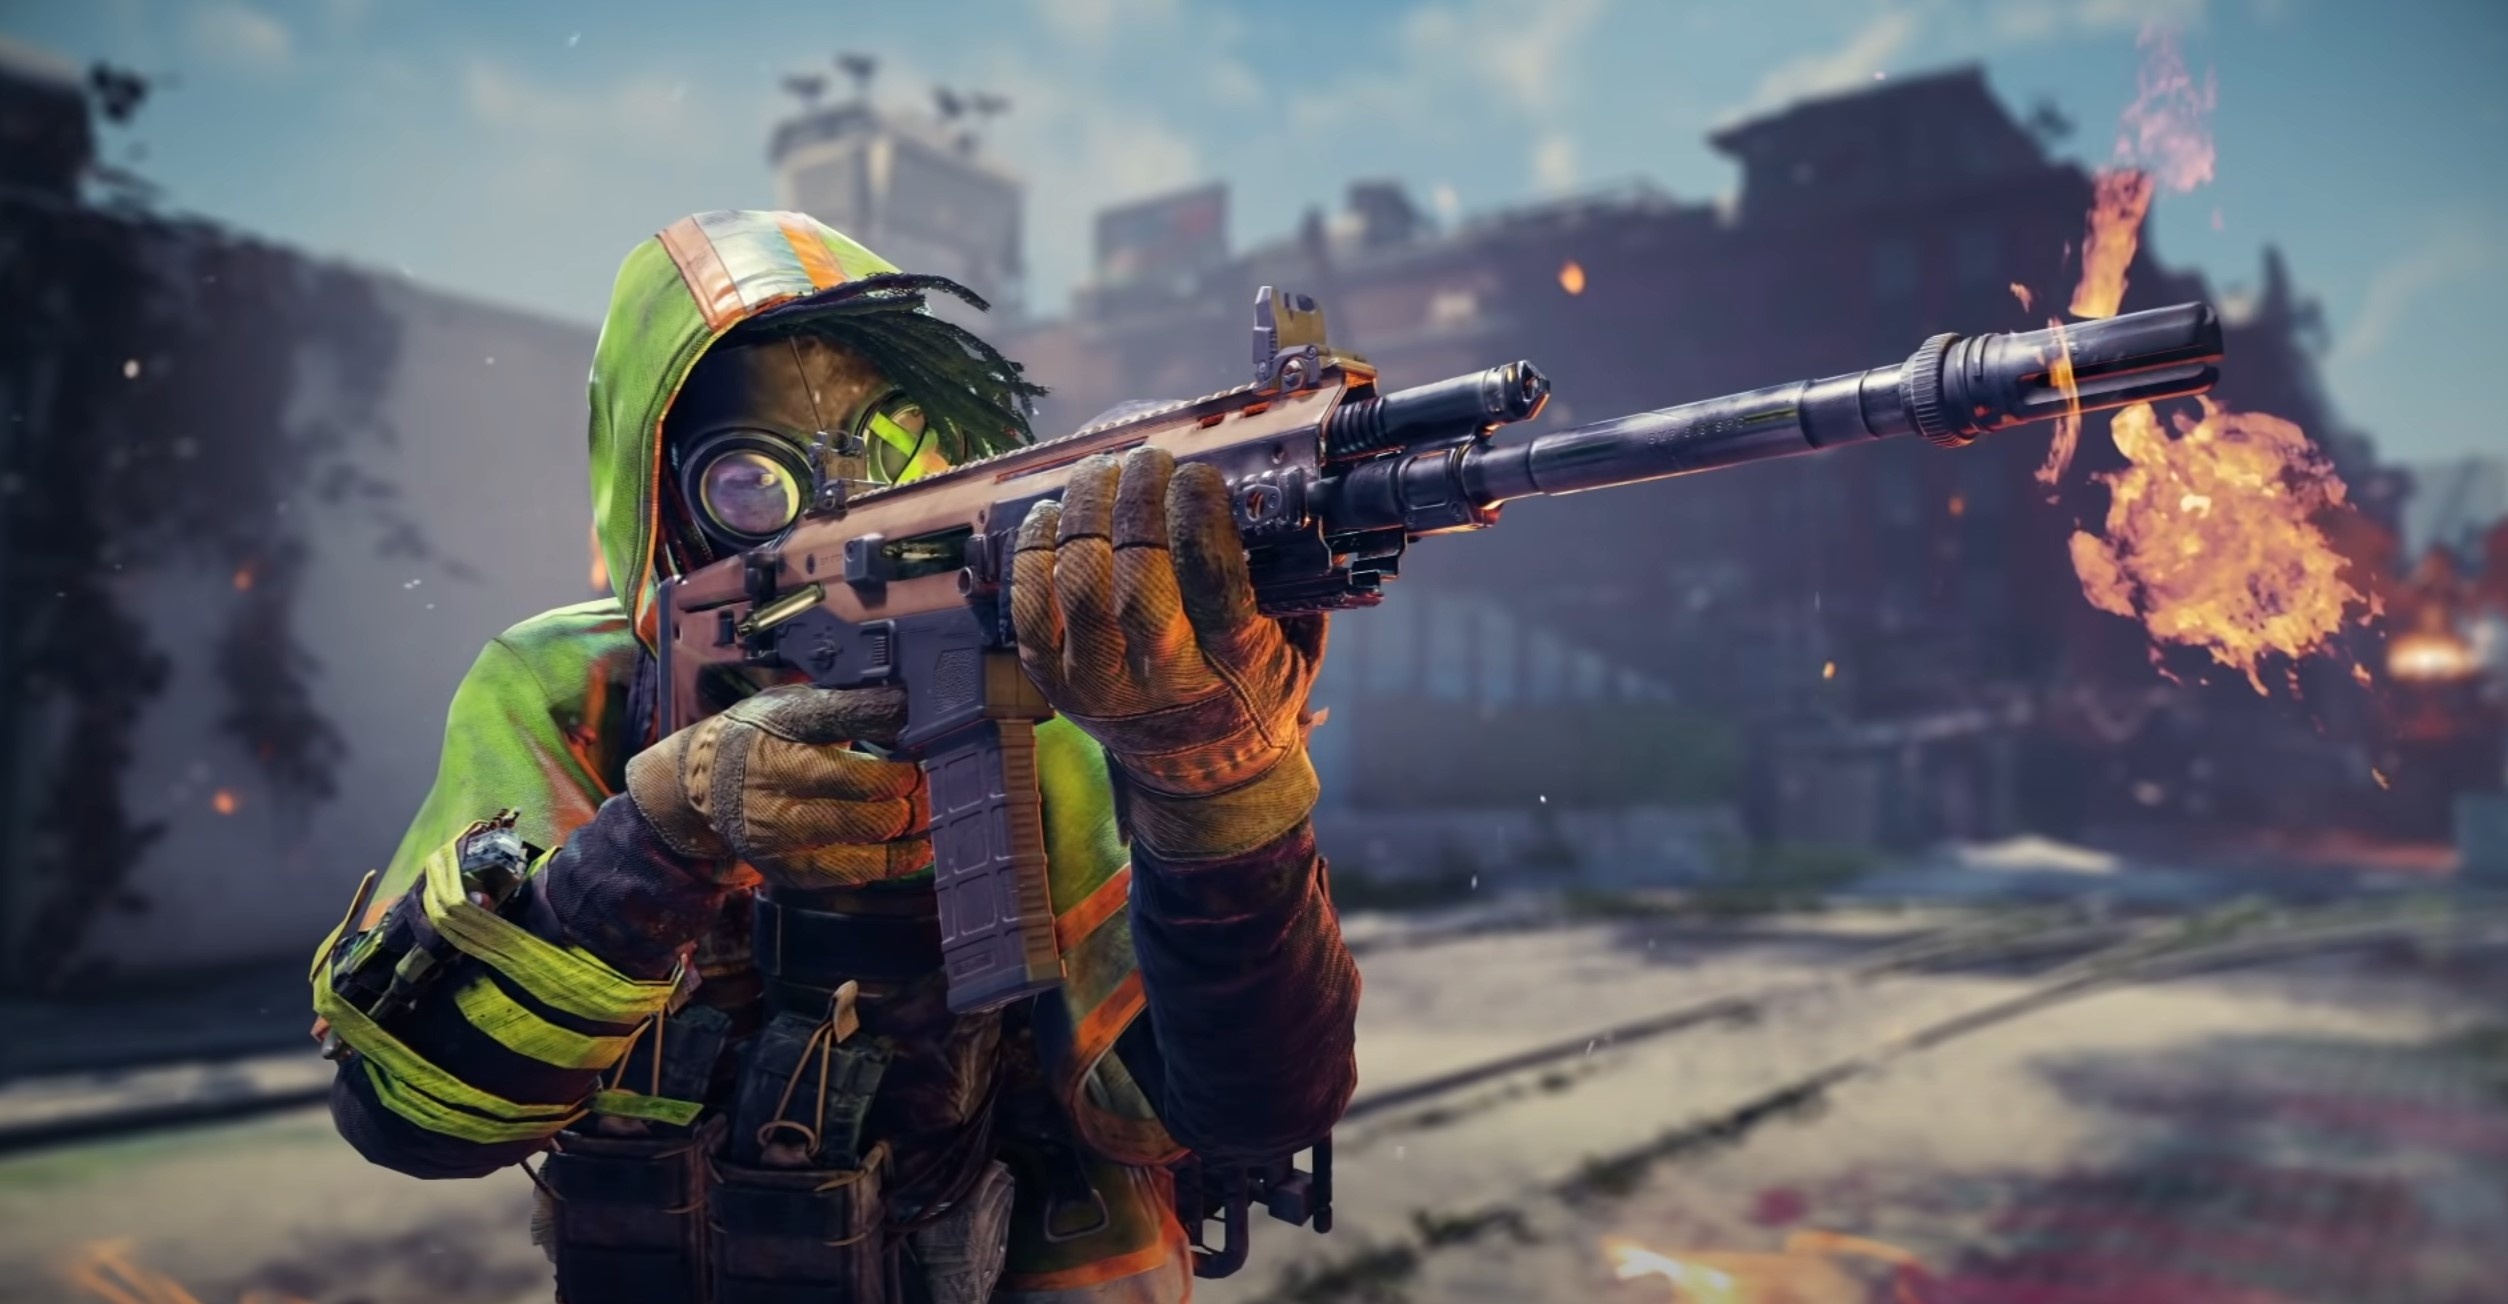 Tom Clancy's XDefiant Release Date, Gameplay Details & Sign Up for Early Access